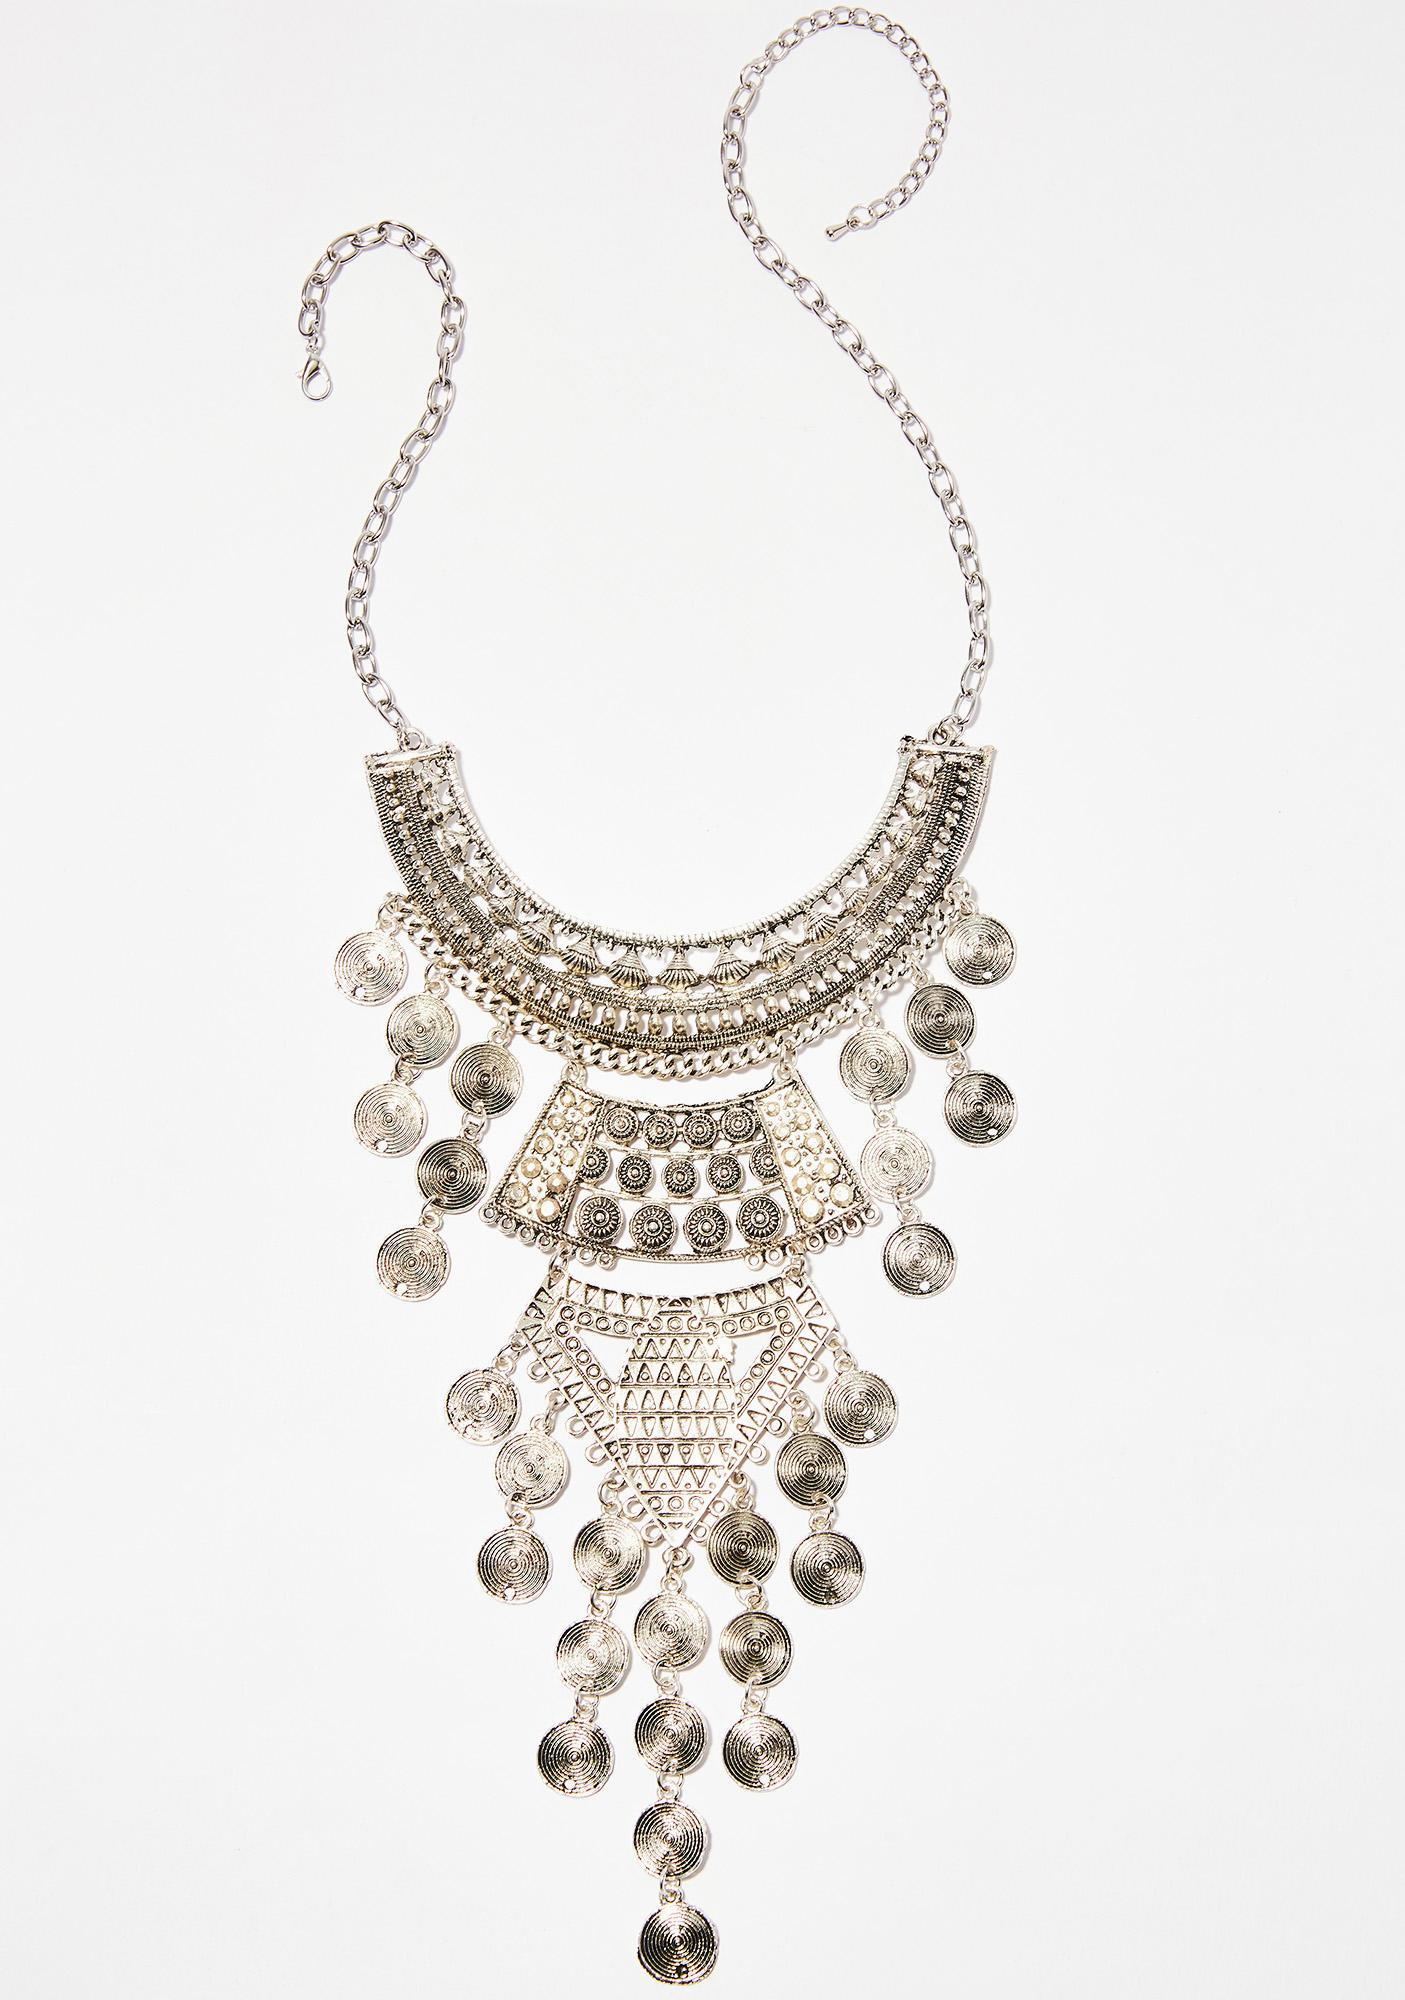 Trip Around The World Statement Necklace